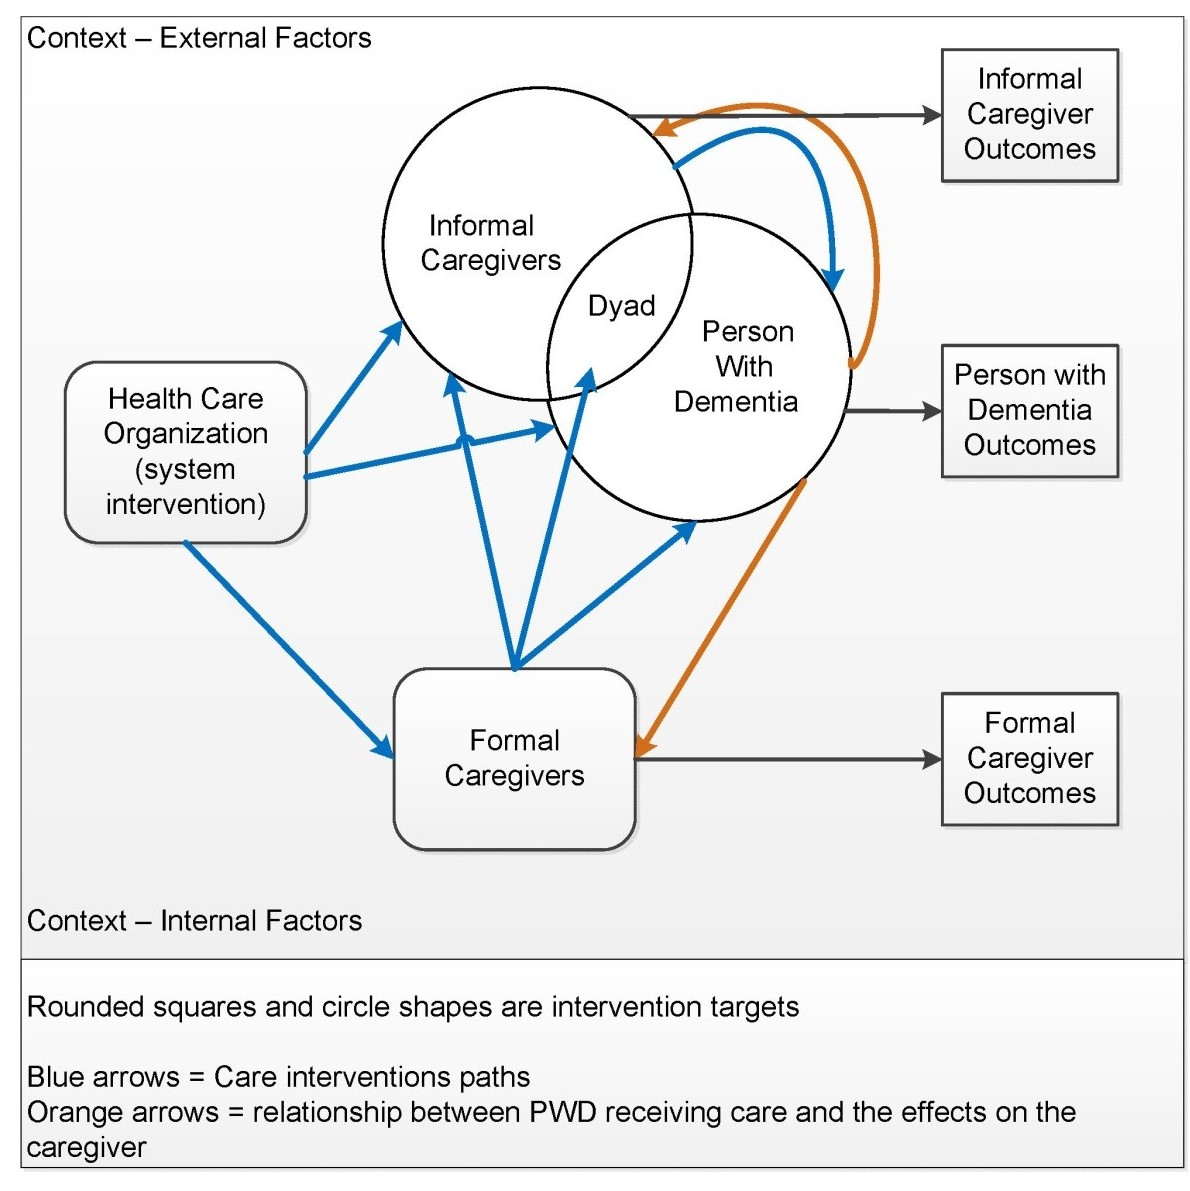 Figure 2 is an illustration of a conceptual model of care interventions for people with dementia and their caregivers. The map shows general links between PWD care and the possible intervention targets and anticipated effects. Health care organizations, formal paid caregivers, informal caregivers, and peoplw with dementis may all be targets of interventions designed to improve care, or how that care is delivered. Interventions may also target the dyad of the PWD and their informal caregiver. Two arrows pointing from the PWD back to the caregivers show the relationship between PWD receiving care and potential effects on the caregiver. Other arrows show the multiple possible paths of care interventions that ultimately are intended to support the caregiver and improve care for the PWD. All of these paths will impact outcomes for formal and informal caregivers and PWD.